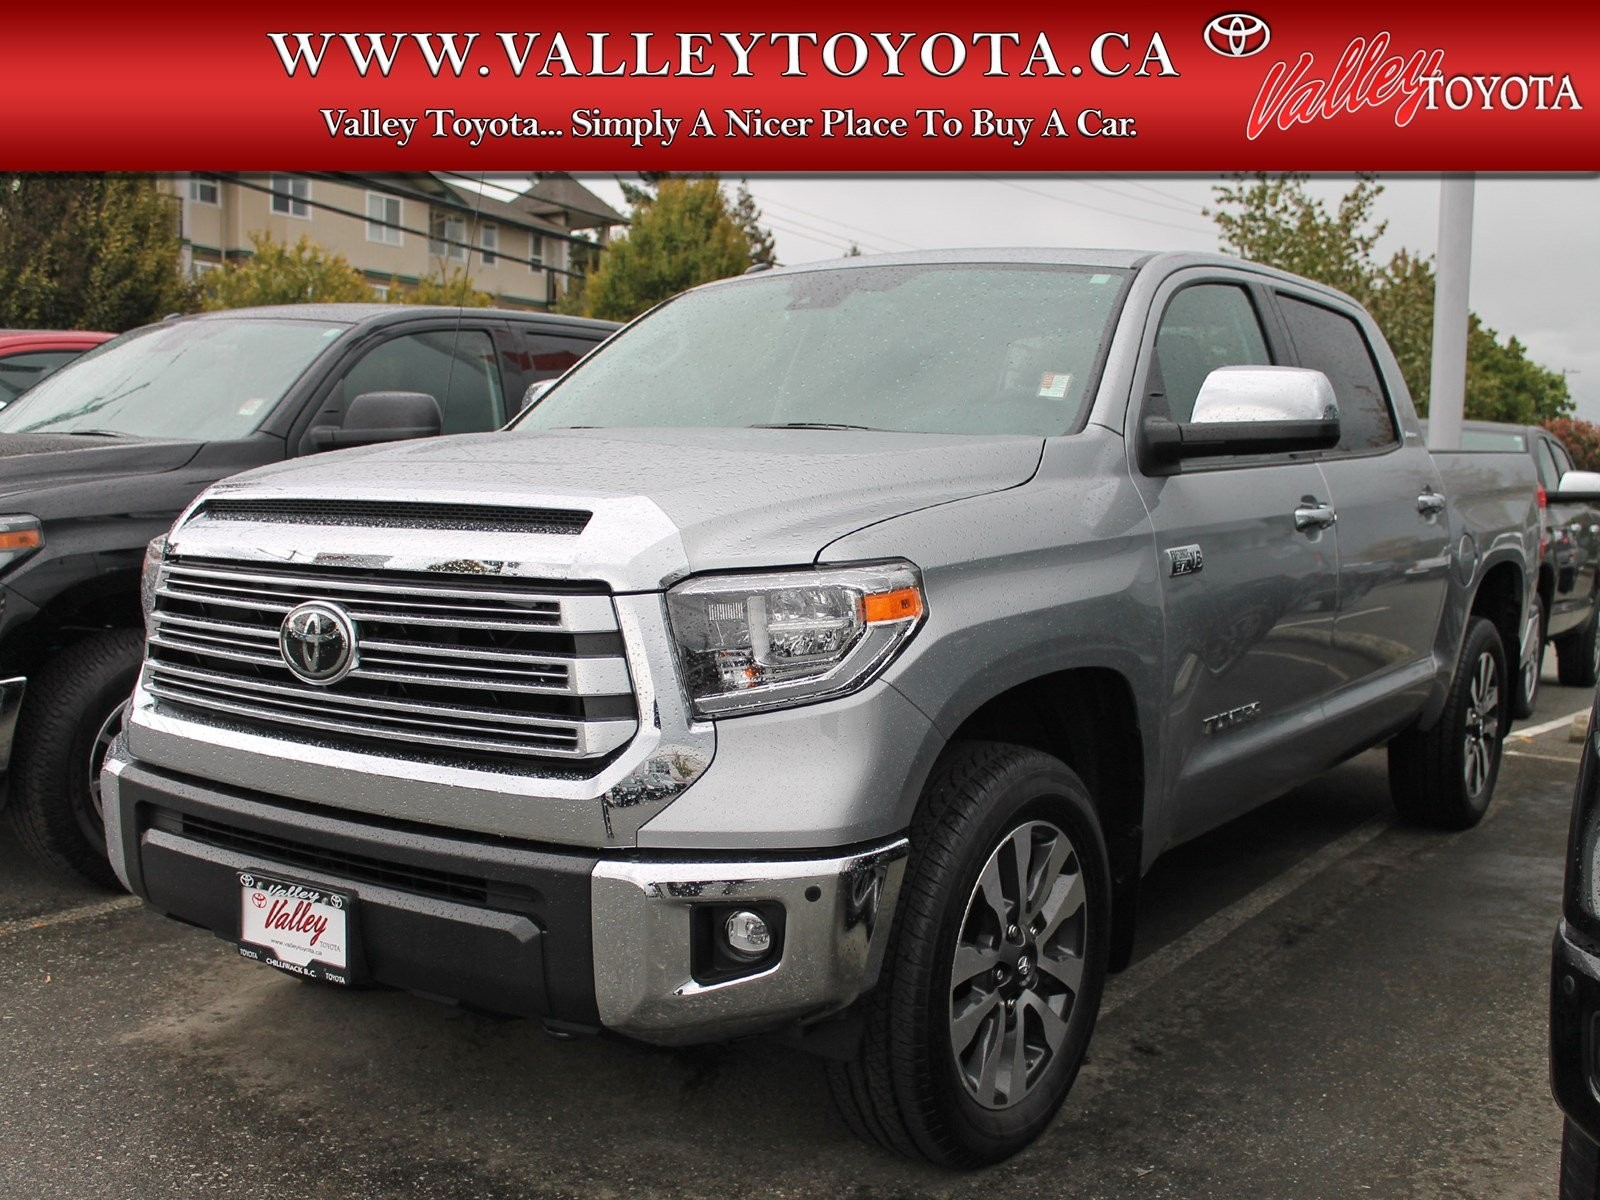 2000 toyota Tundra Parts Diagram New 2019 toyota Tundra Limited Double Cab In Chilliwack 1h Of 2000 toyota Tundra Parts Diagram